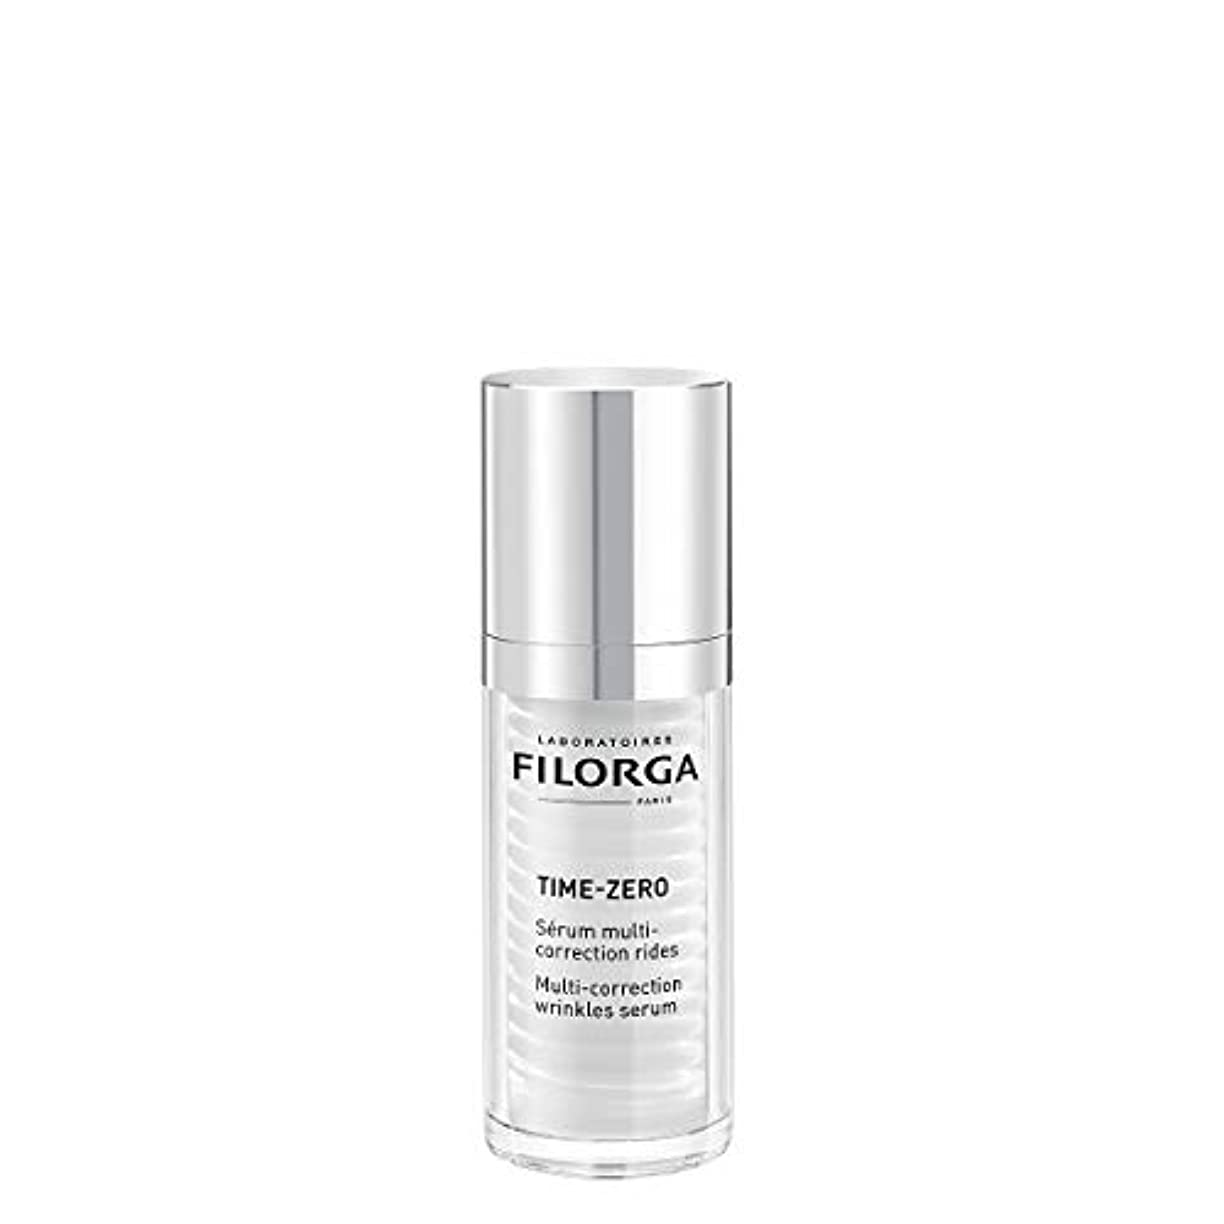 却下する写真撮影静けさFilorga Time-Zero Multi-Correction Wrinkles Serum 30ml